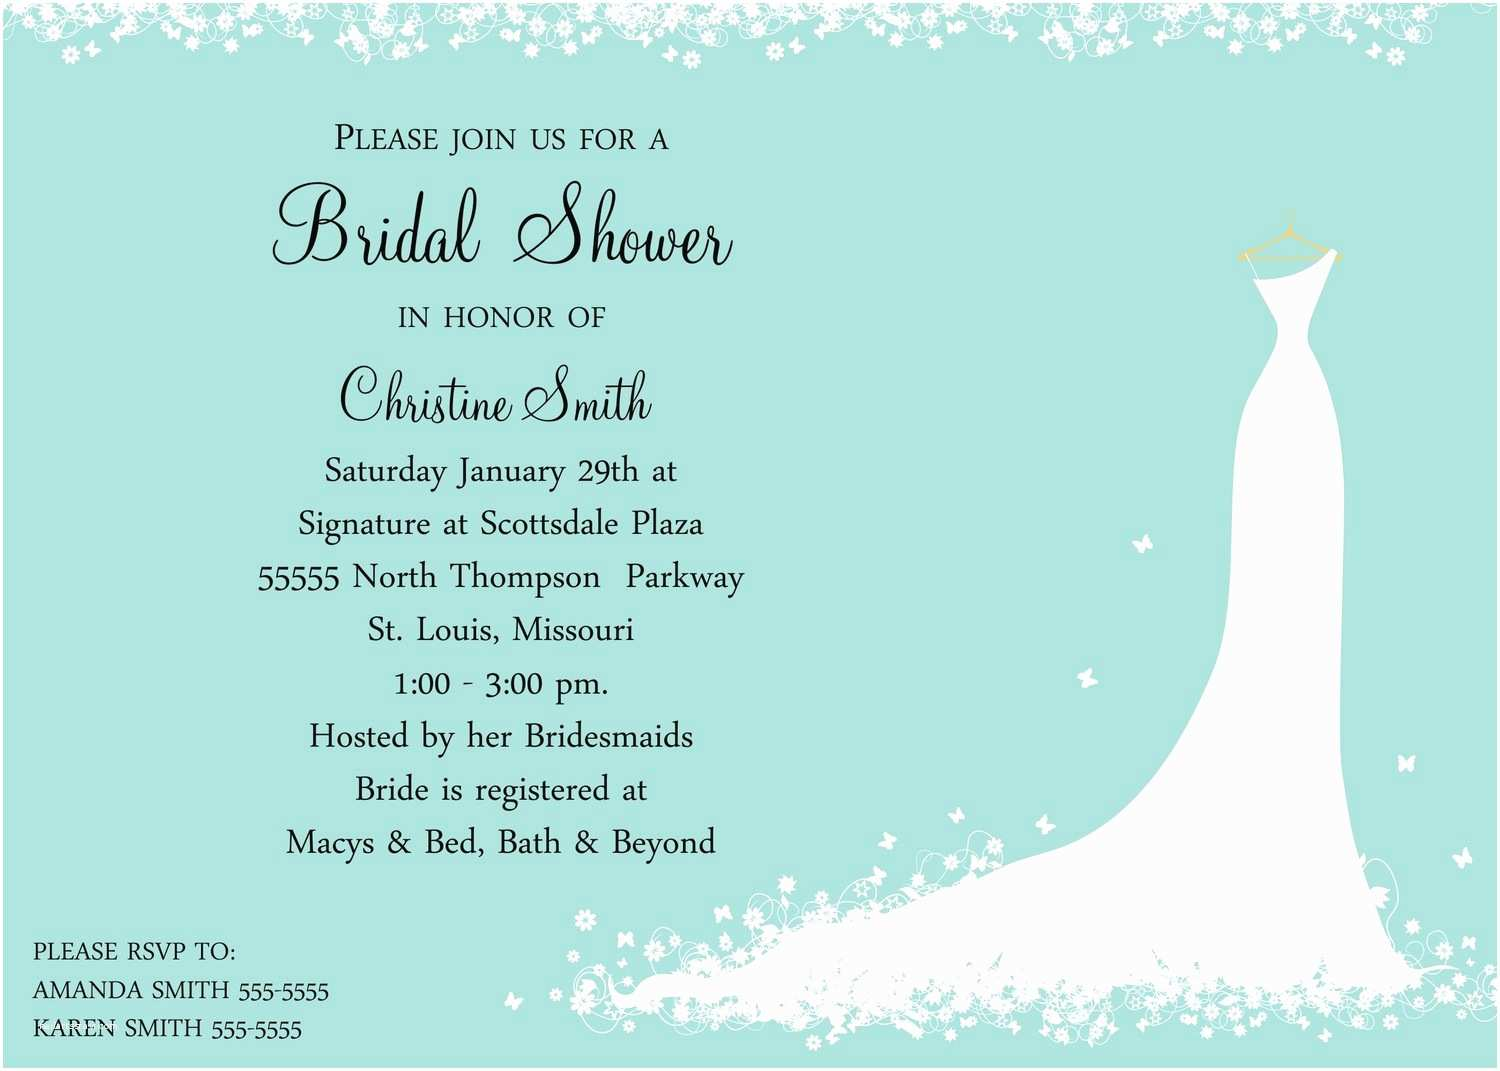 Email Wedding Shower Invitations Bridal Shower Invitations Bridal Shower Invitation